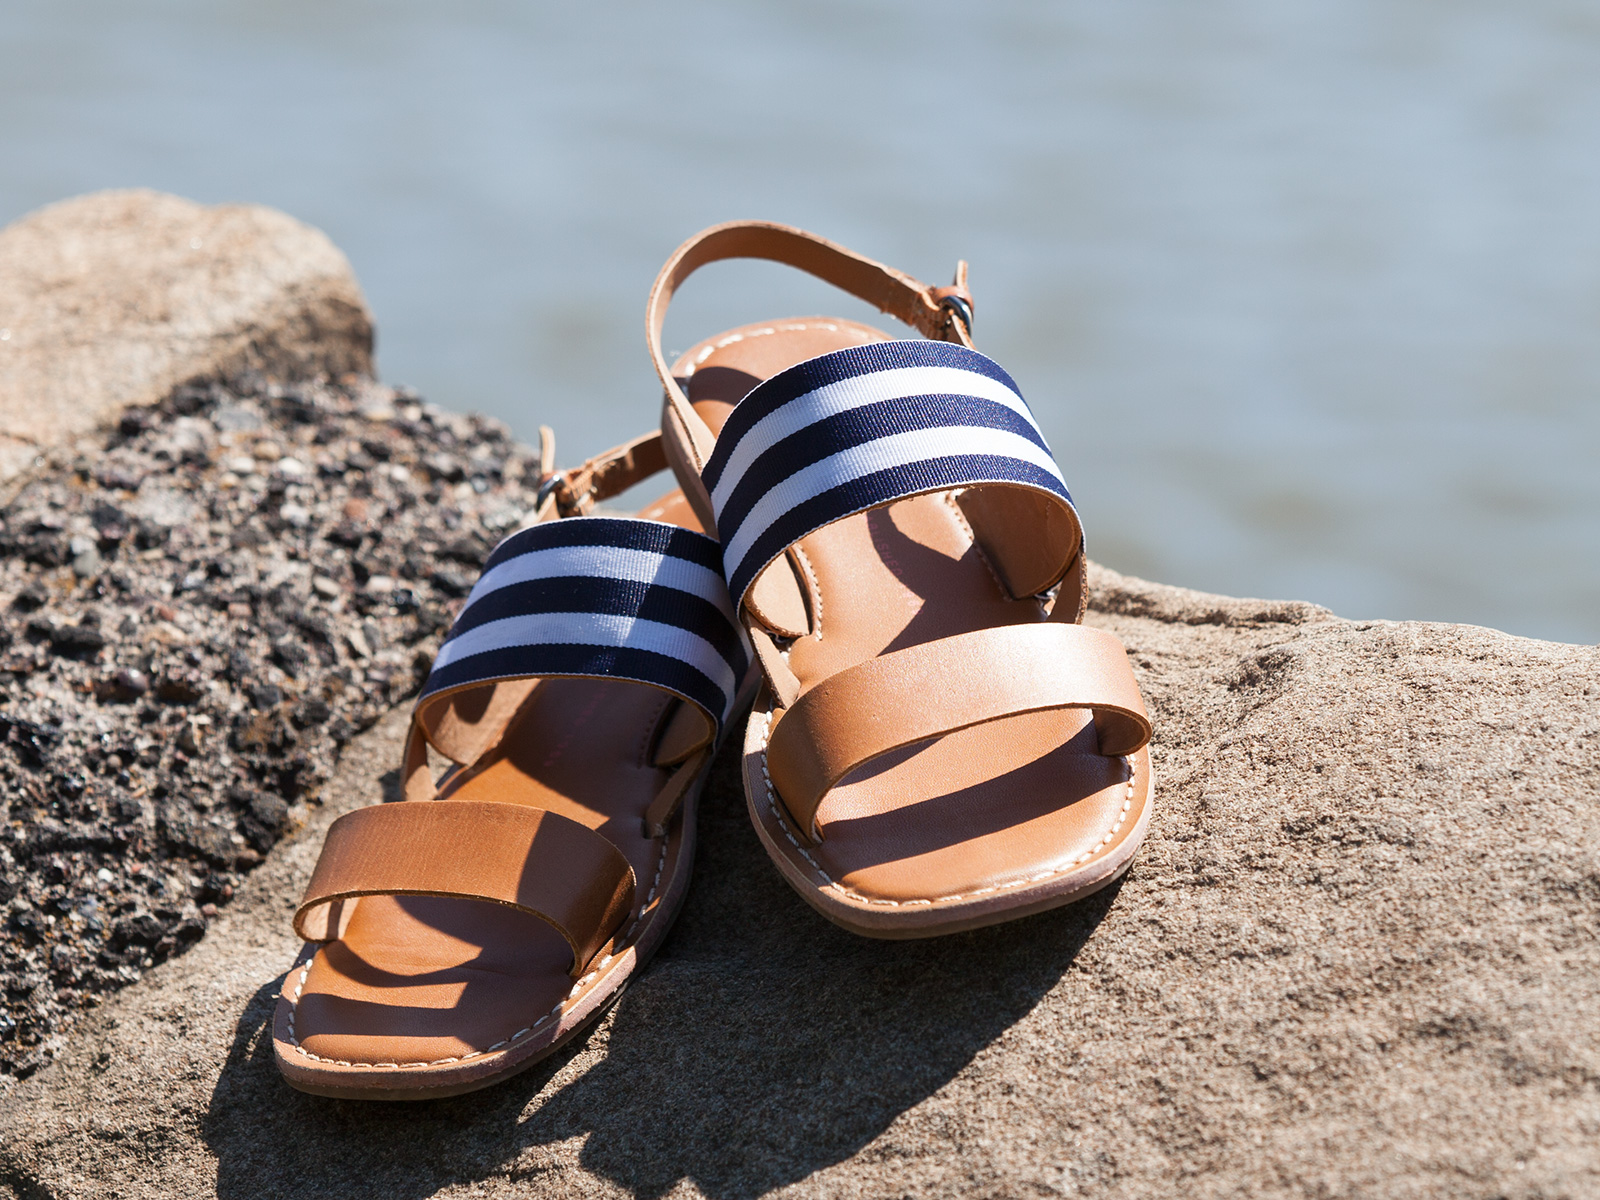 DIY Striped Sandals photo 3 by Trinkets in Bloom